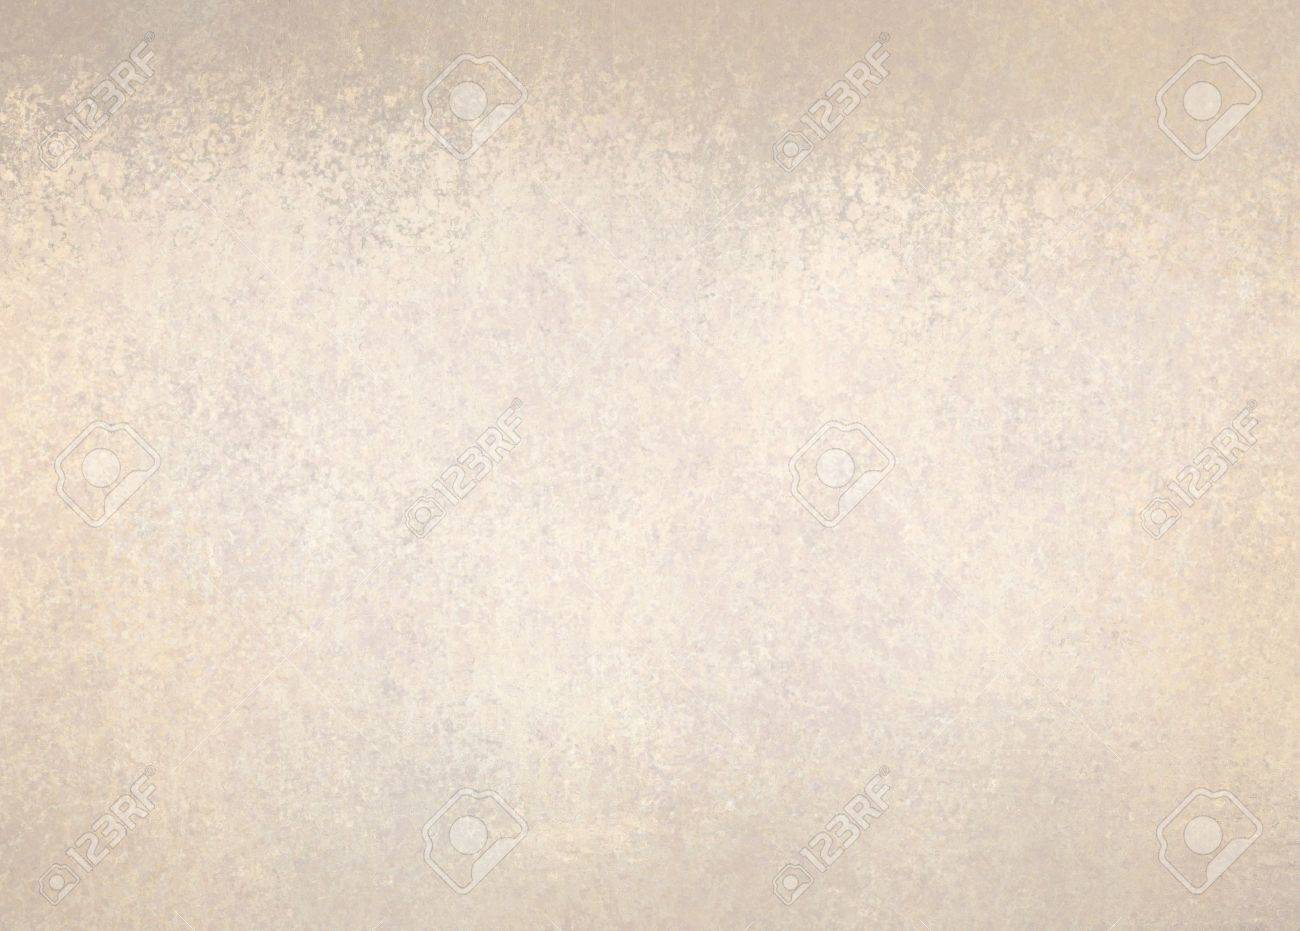 vintage old white paper background with distressed texture stock